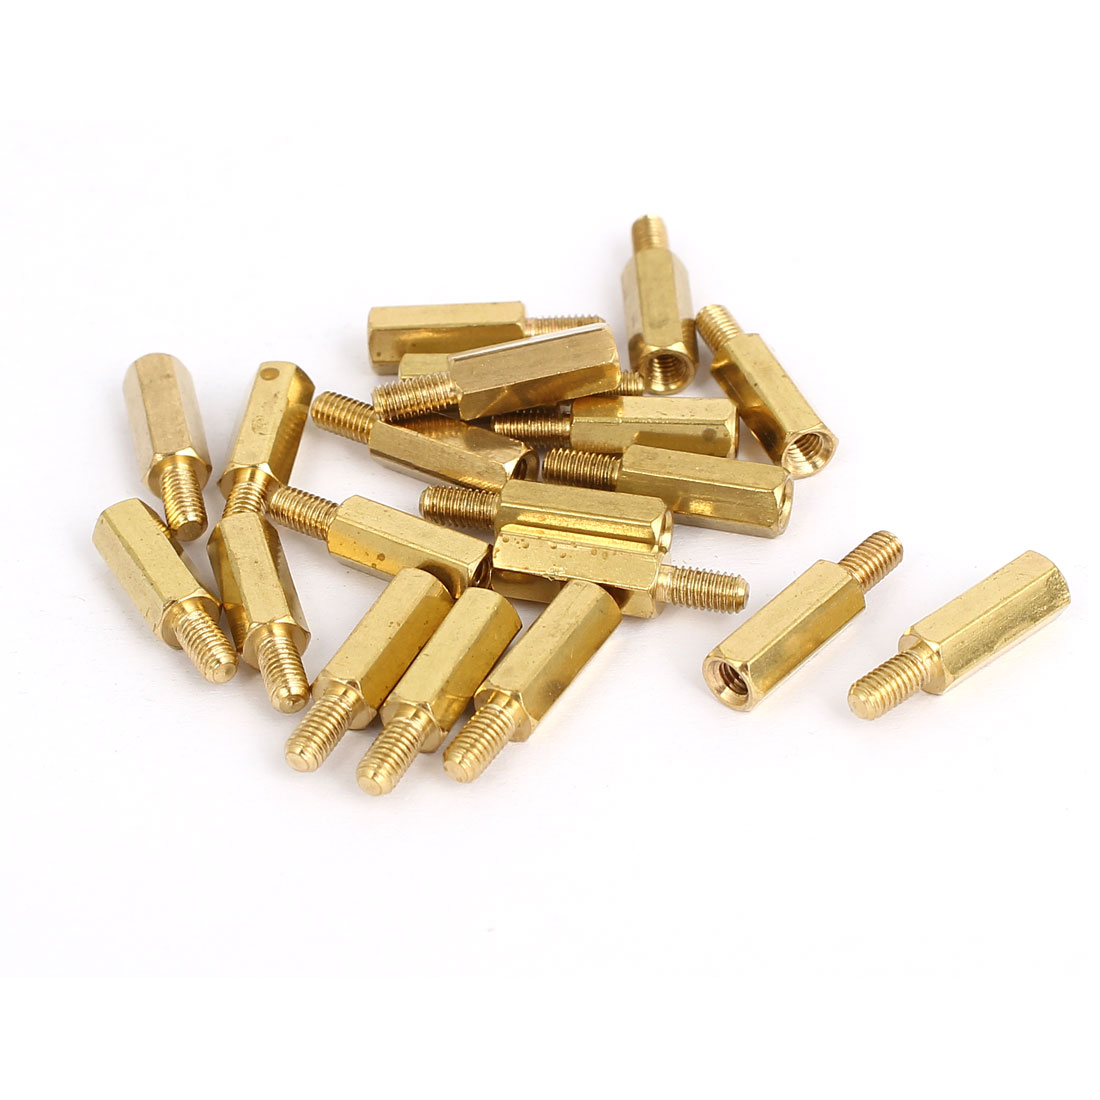 M3x12mm+6mm Brass Threaded Hex Hexagonal Male/Female Standoff Spacer Pillar 20pcs